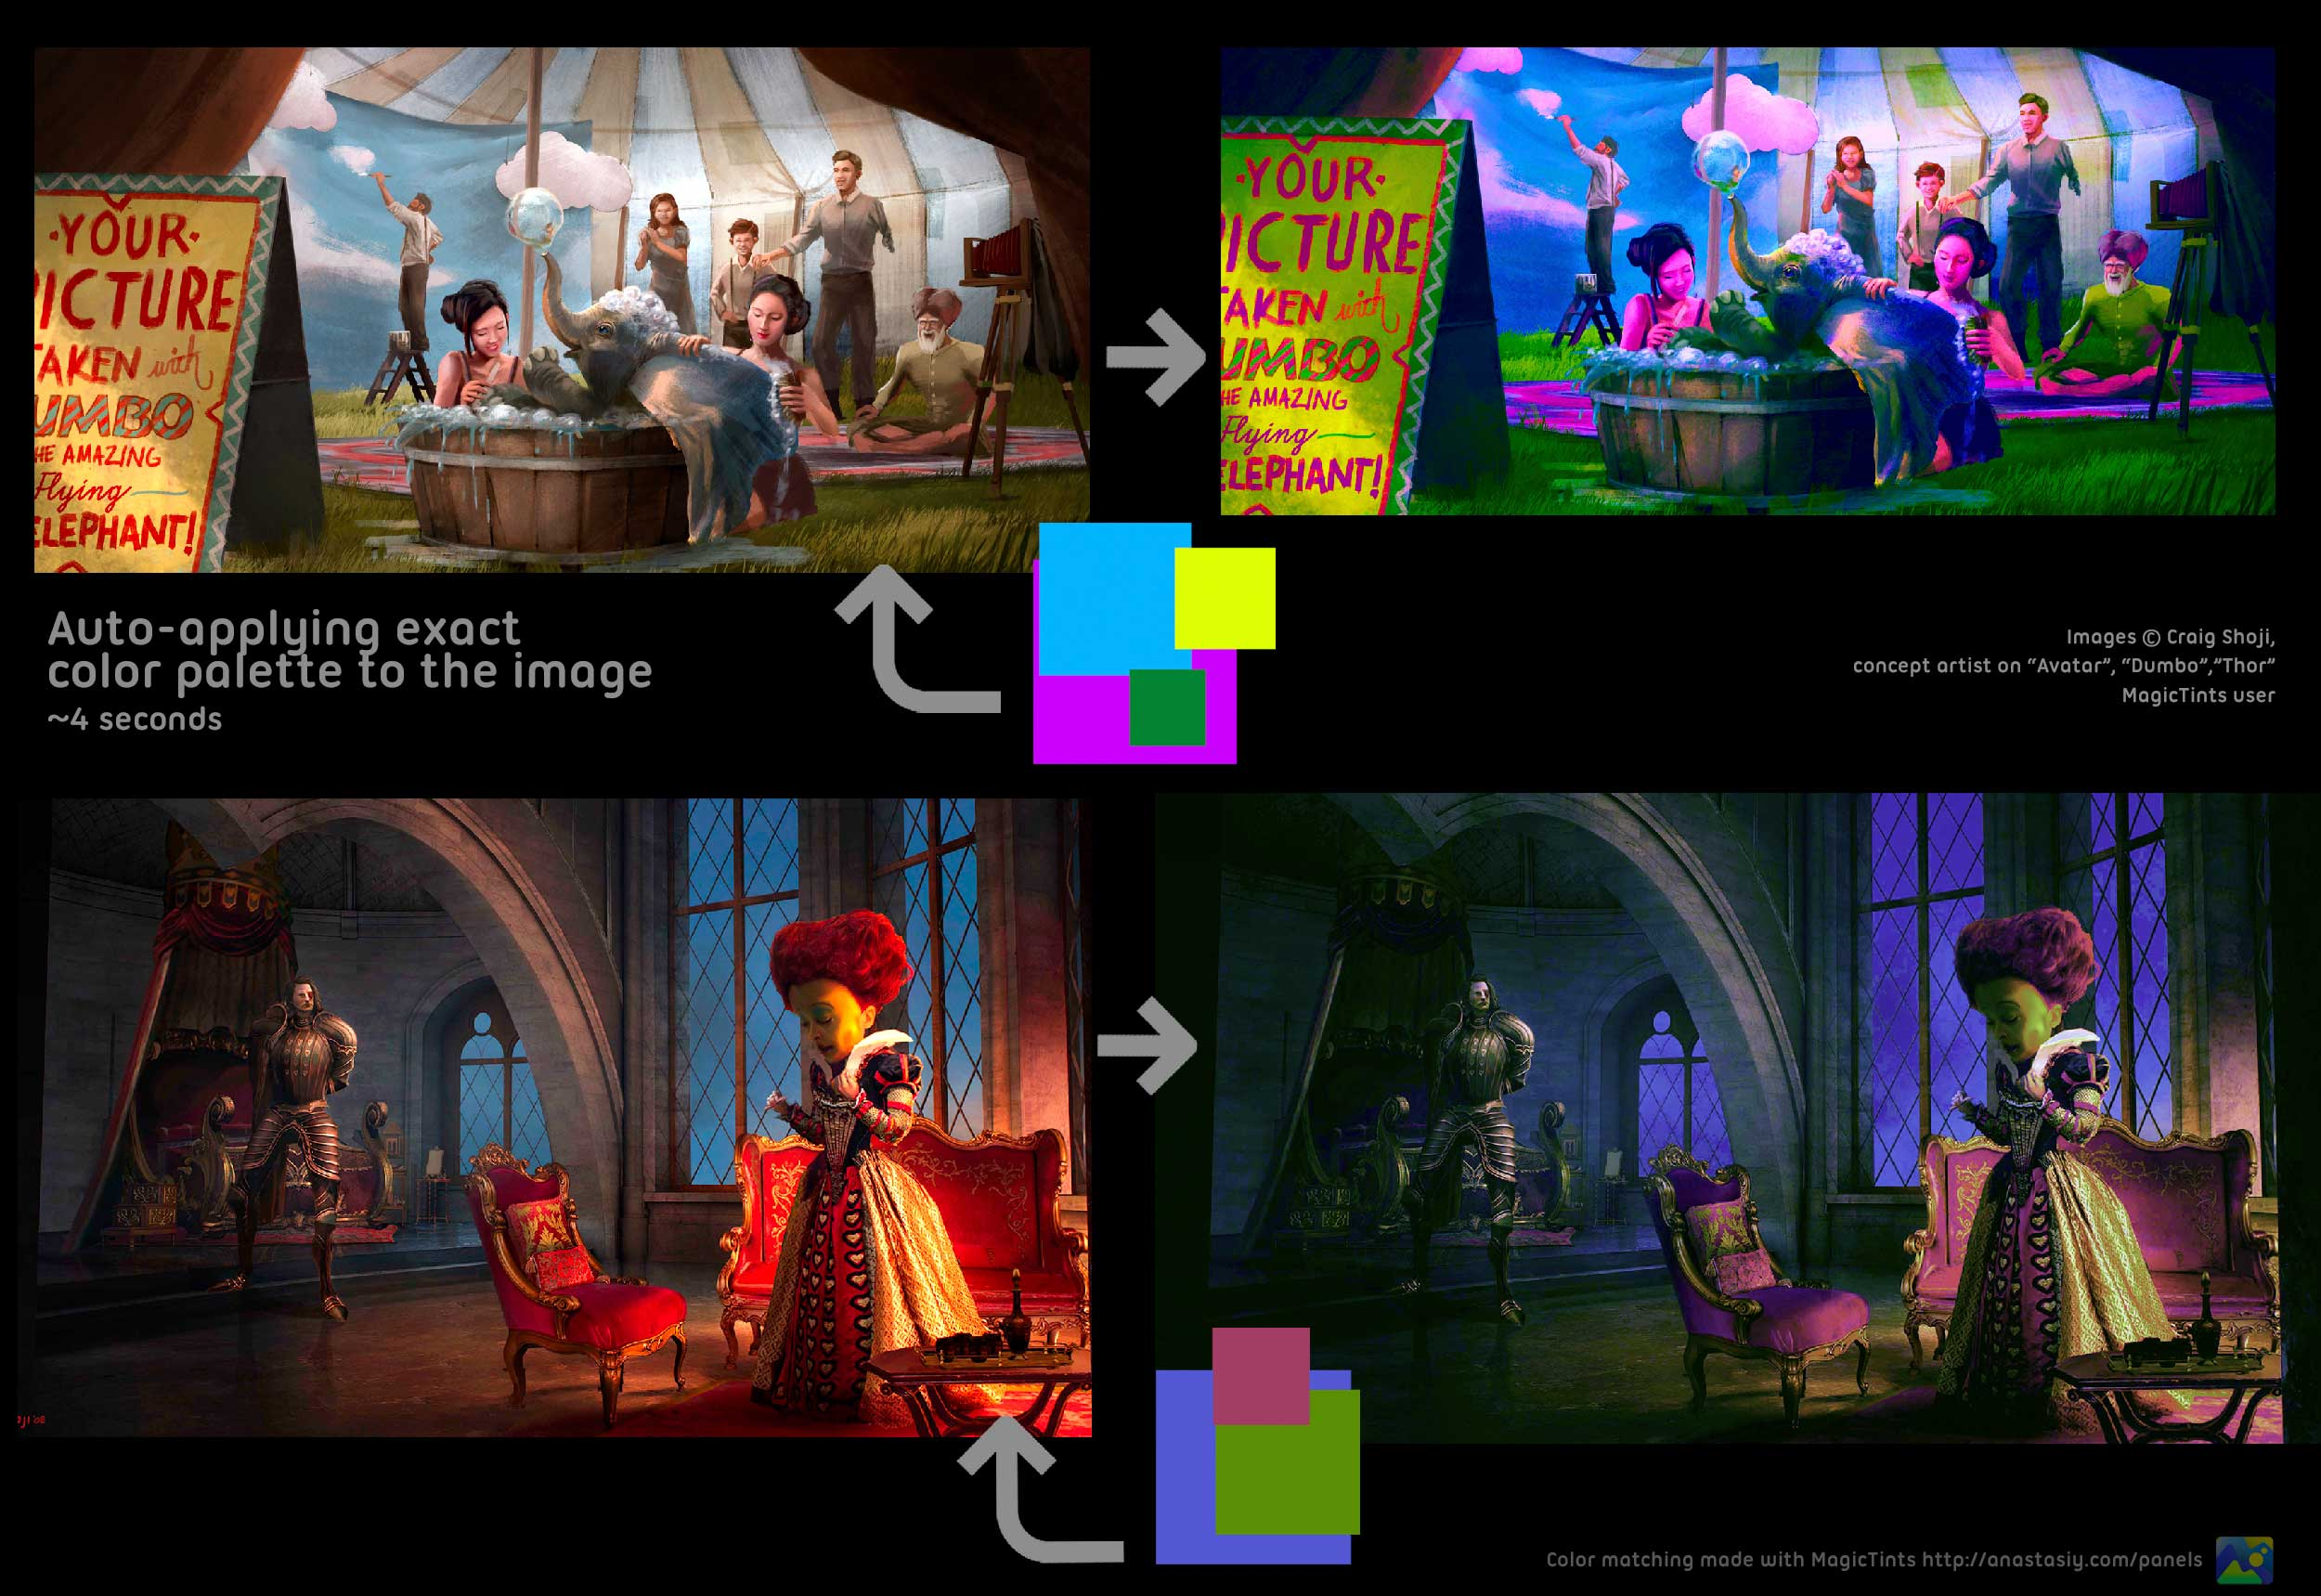 Auto-applying exact color correction to the image with MagicTints